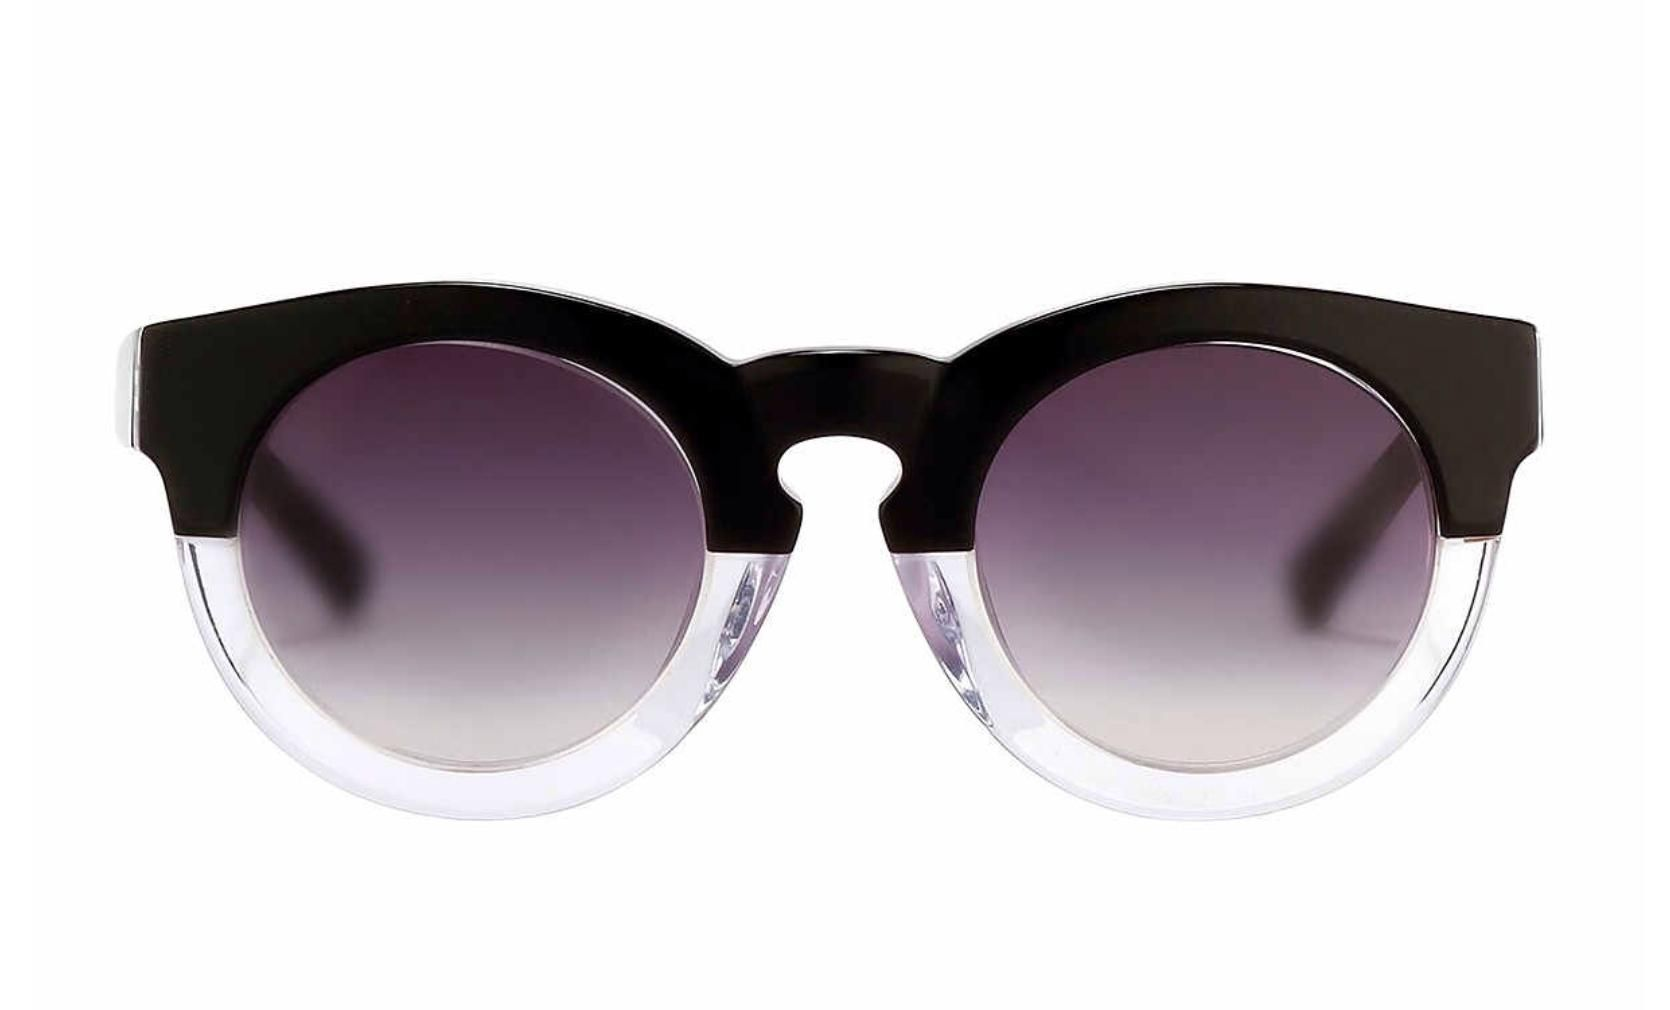 7d60e6d3c827 Free shipping and guaranteed authenticity on New Two Tone Keyhole Round  Frame Sunglasses